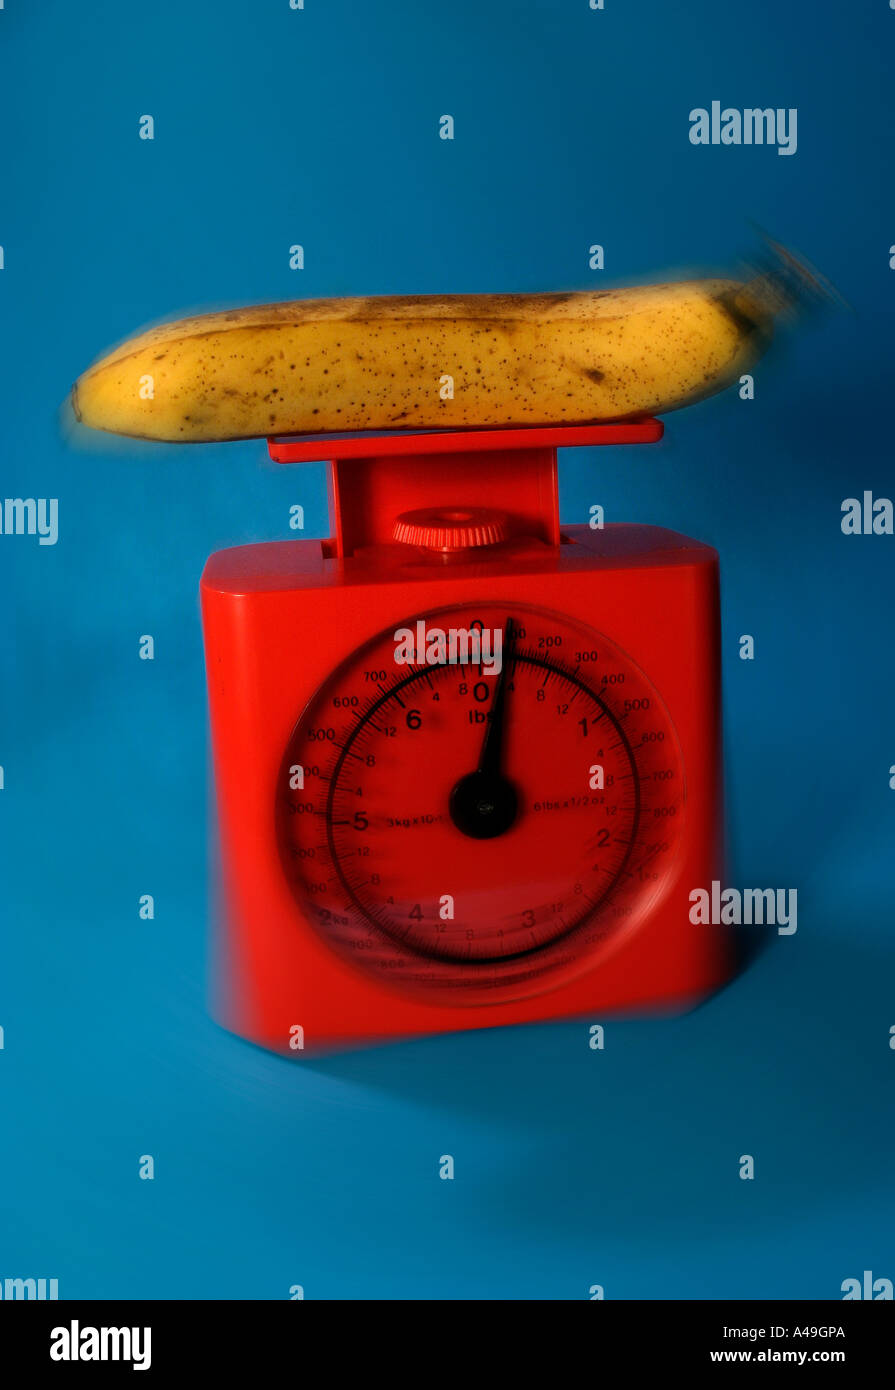 banana on red scales - Stock Image